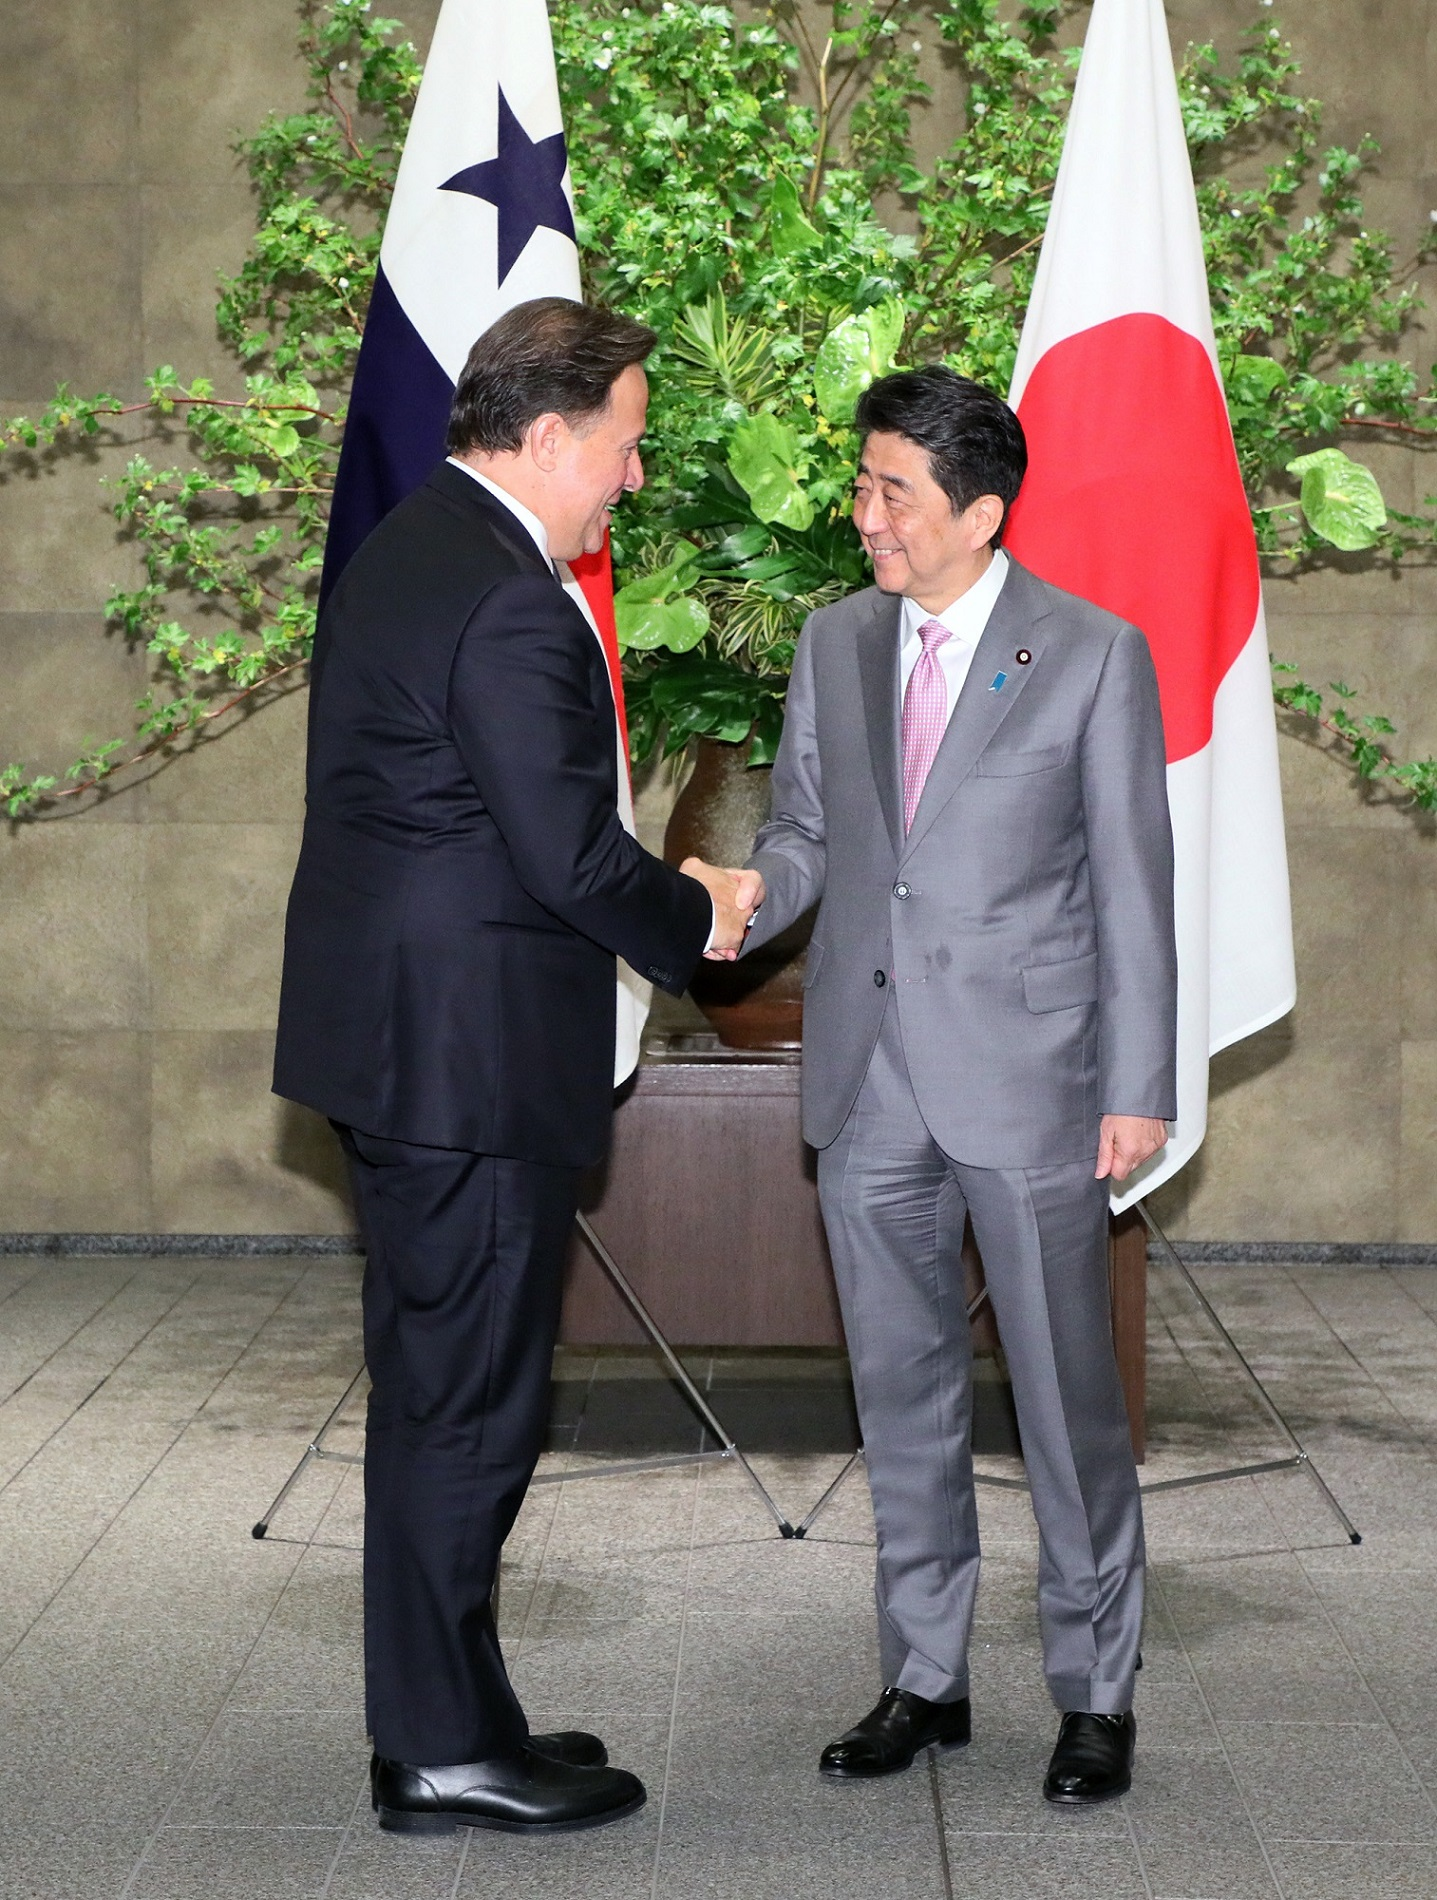 Photograph of the Prime Minister welcoming the President of Panama